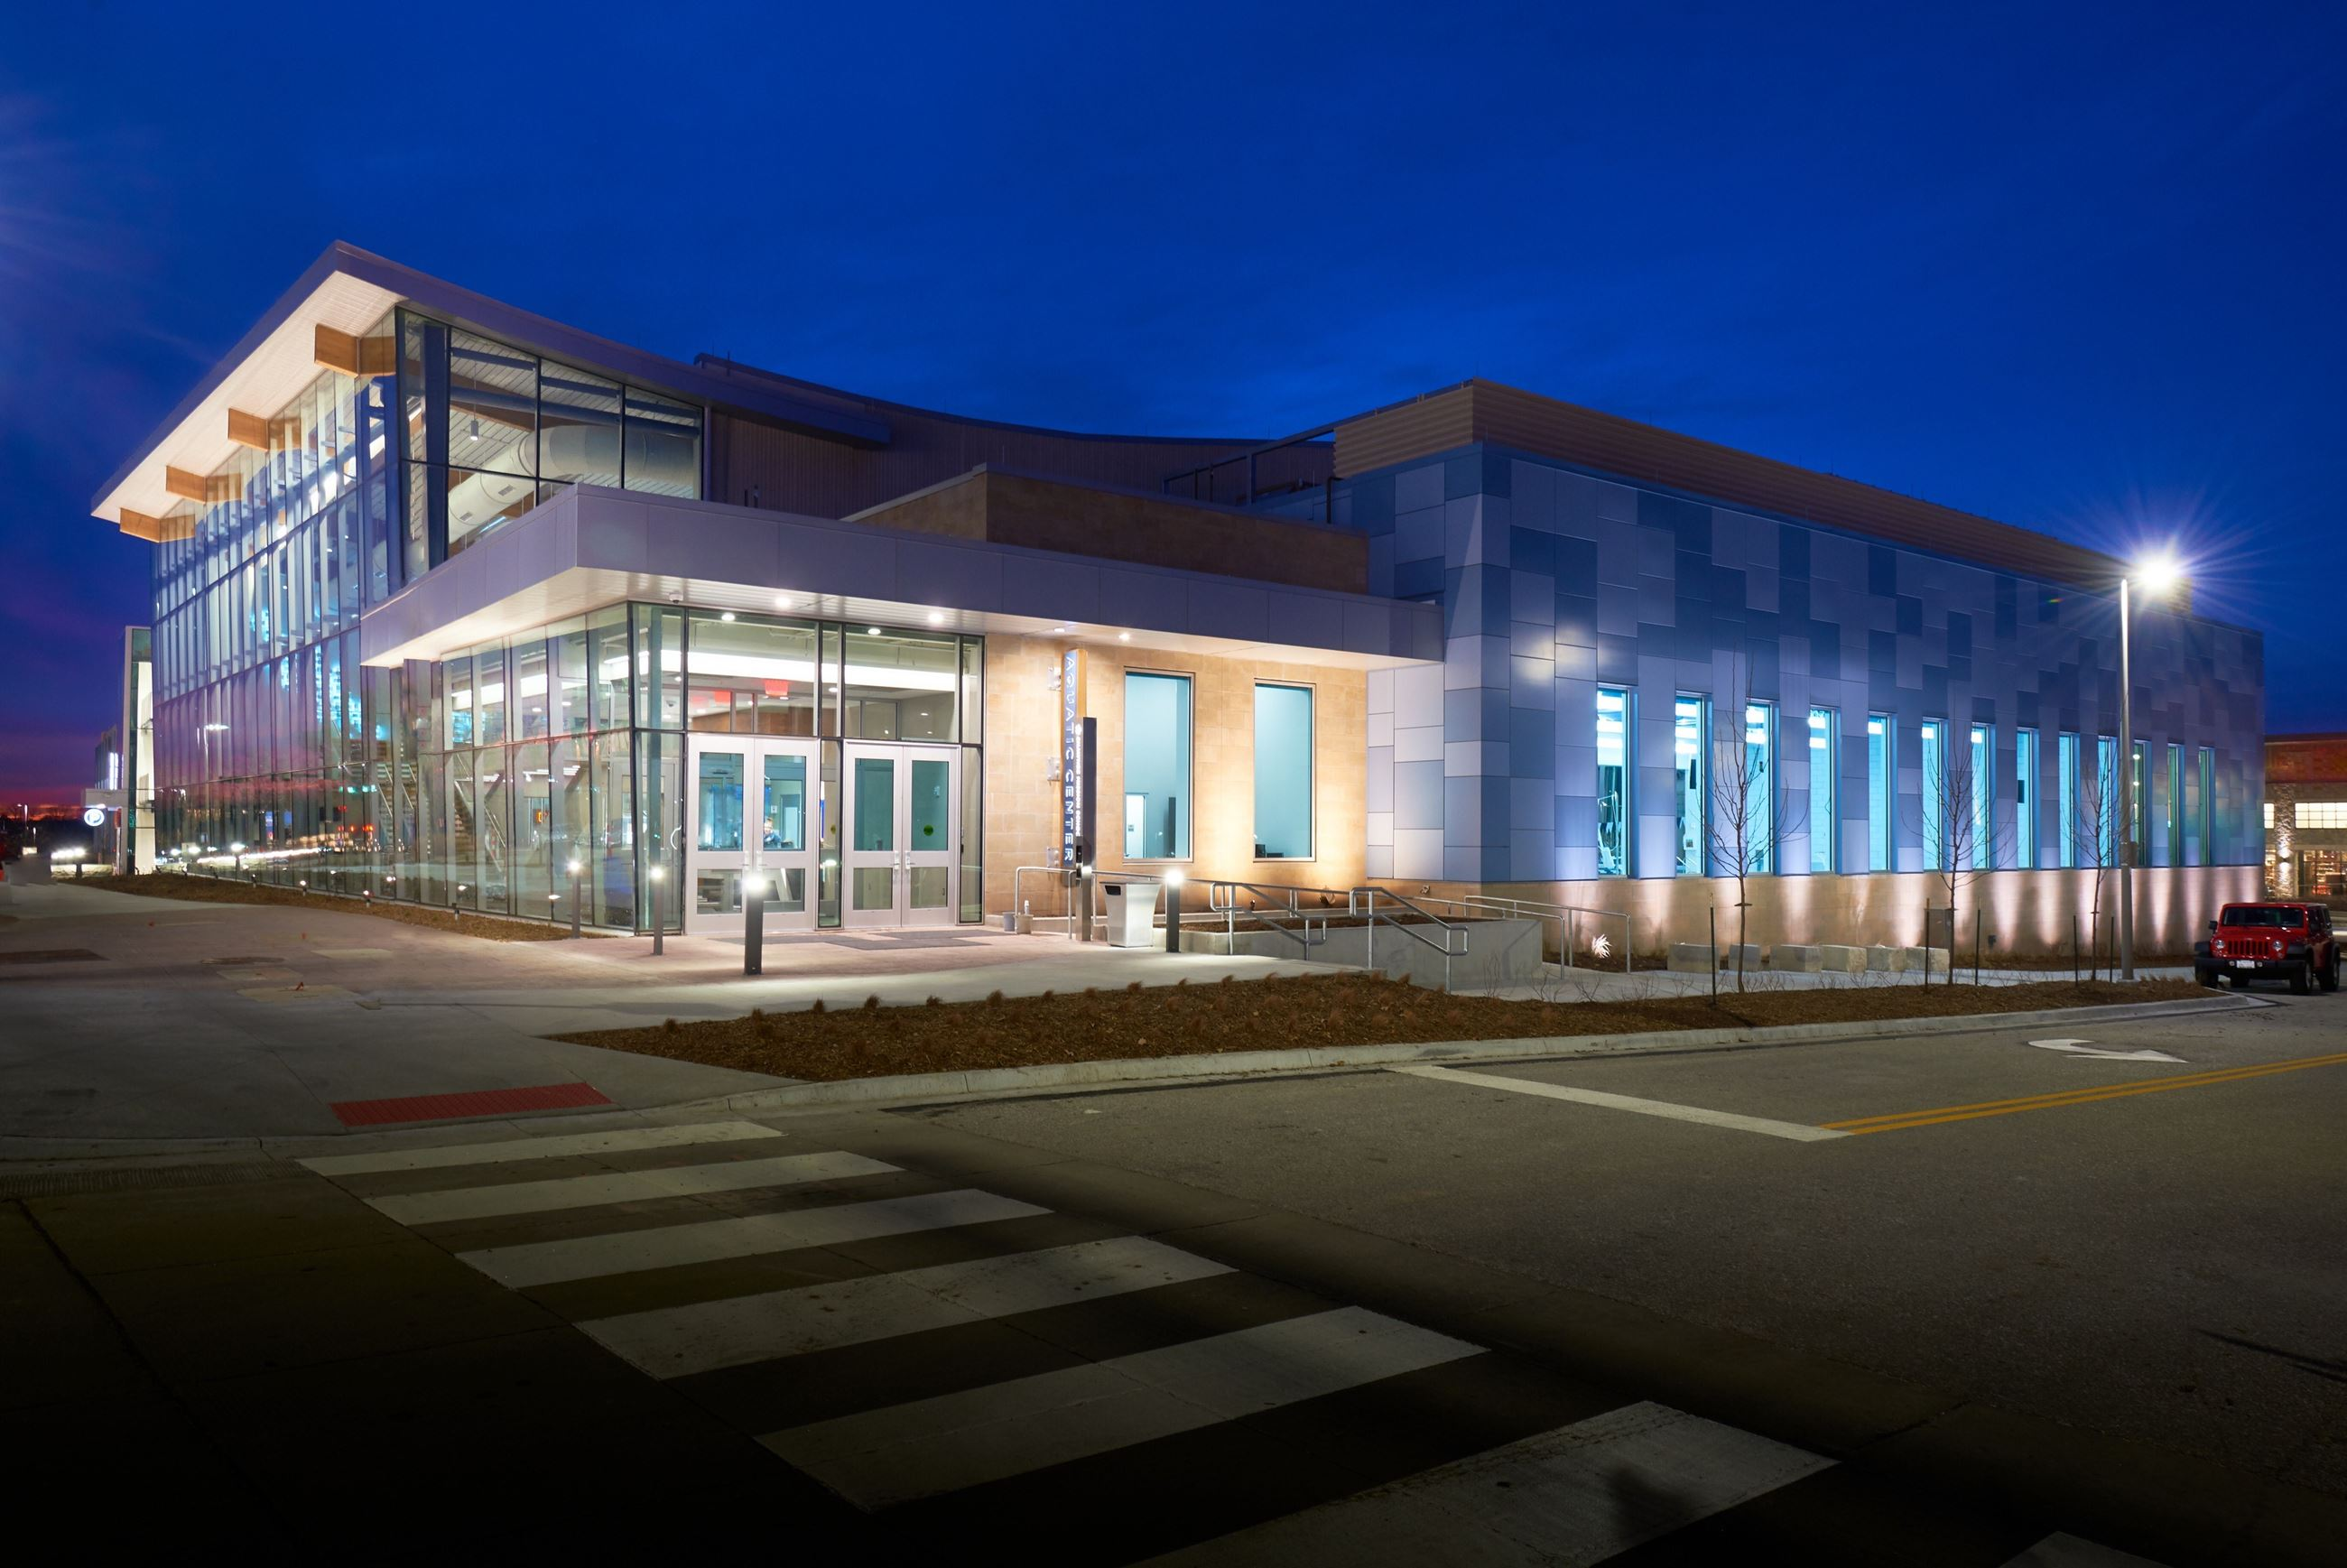 Shawnee Mission School District Aquatic Center - Picture of outside of building evening